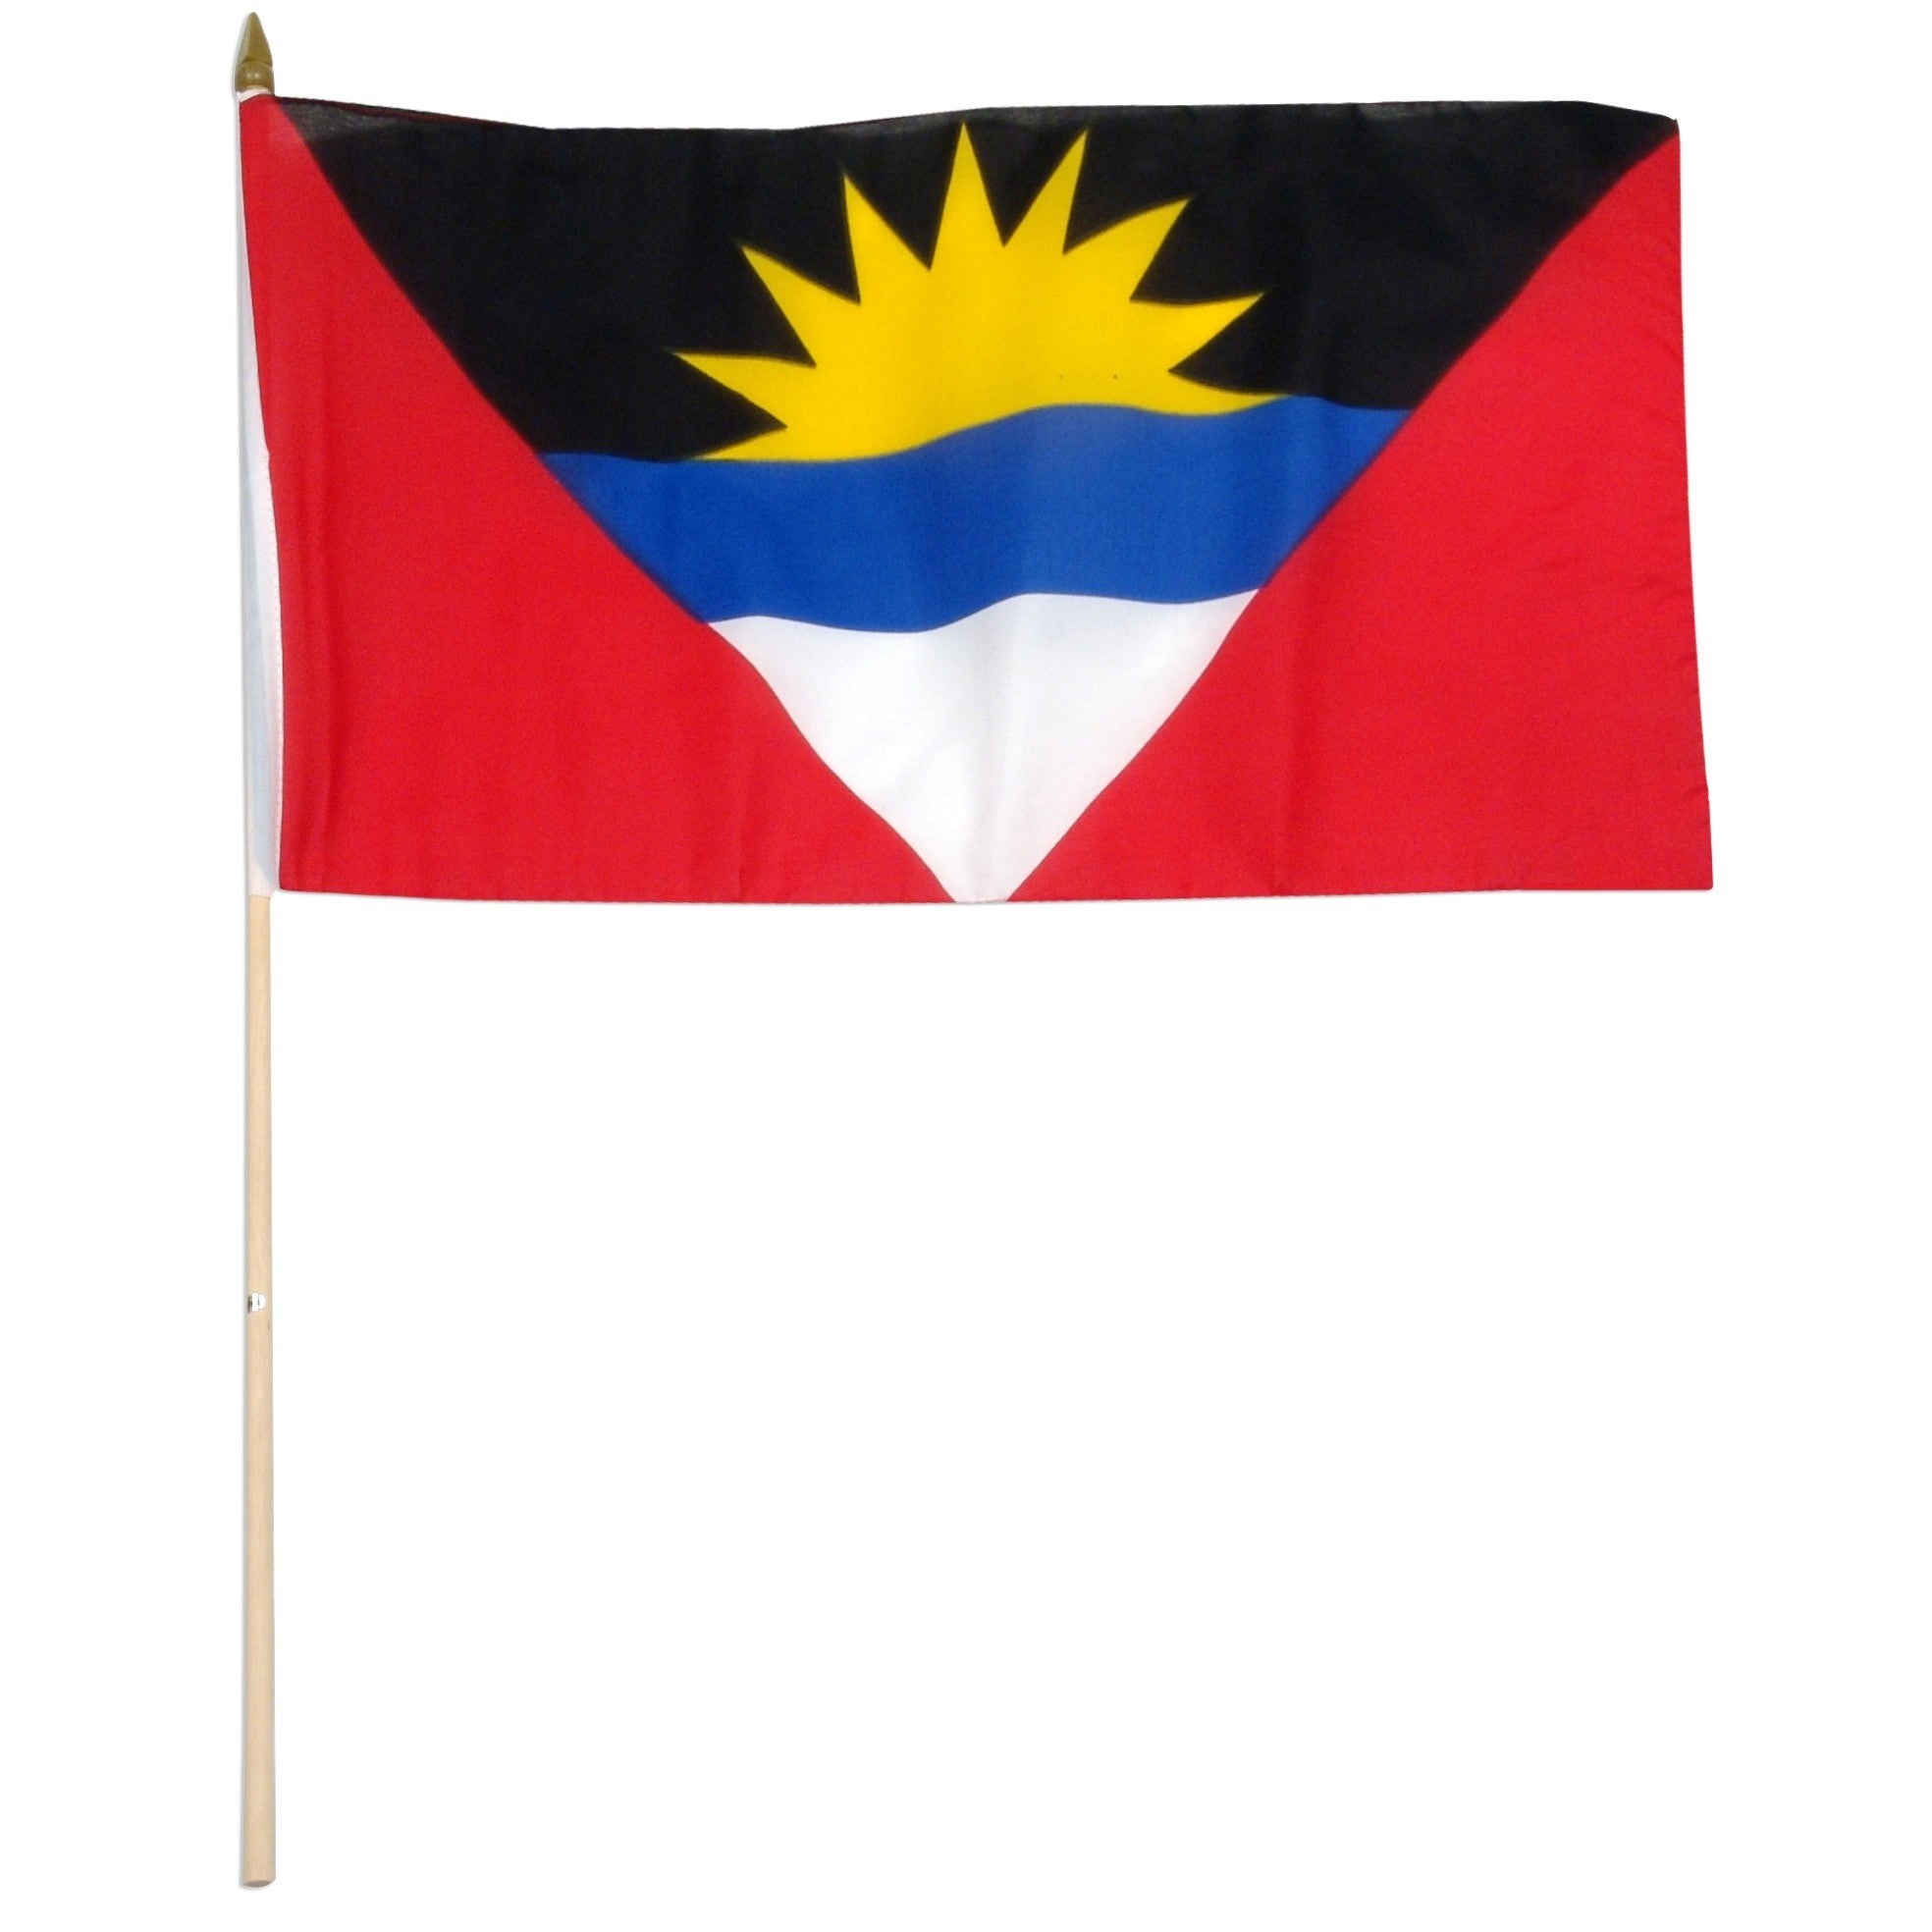 "Antigua & Barbuda 12"" x 18"" Mounted Island Flag"